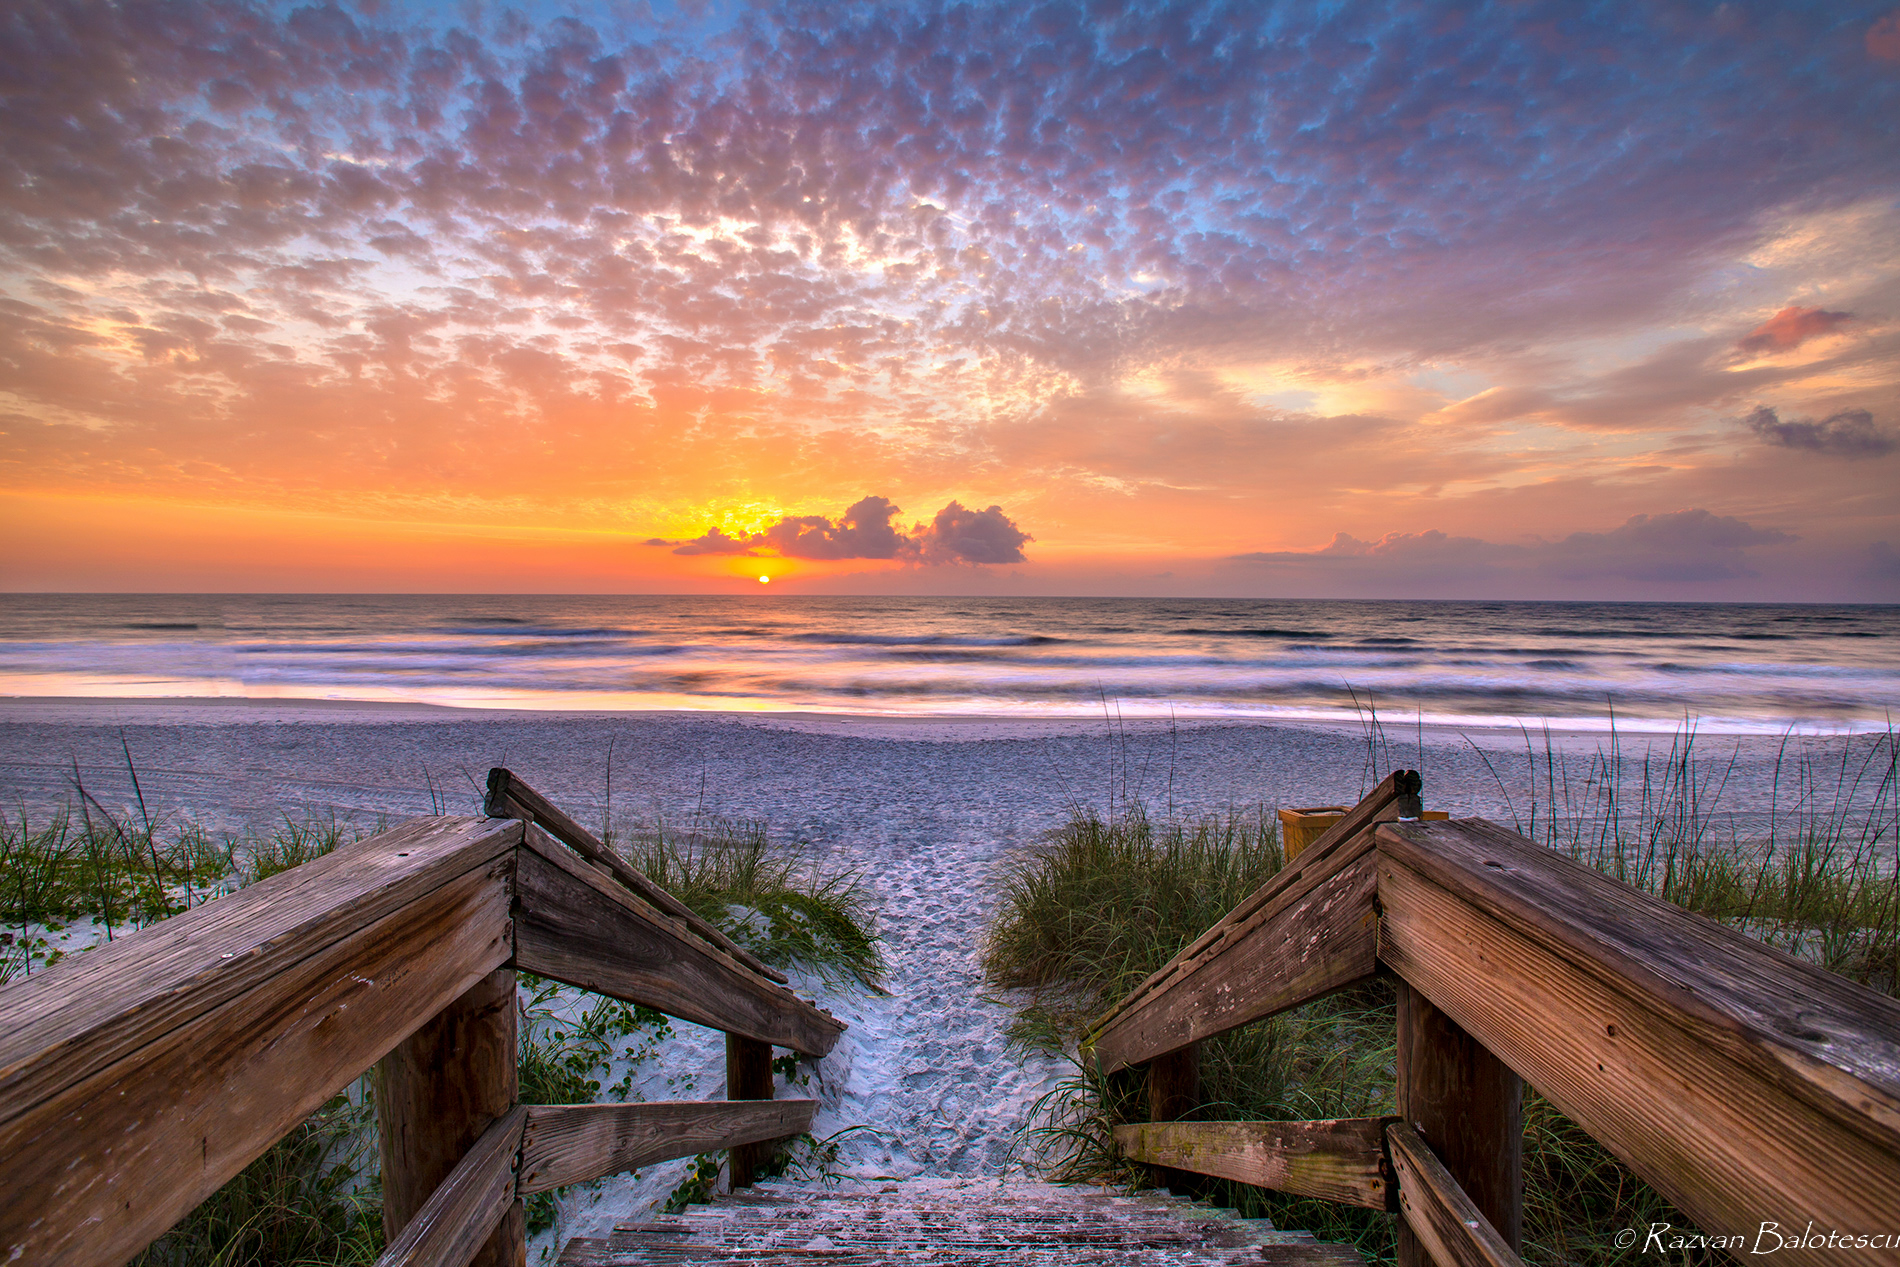 Jacksonville Named One of The Best Places to Live - Void ...  |Jacksonville Florida Photography